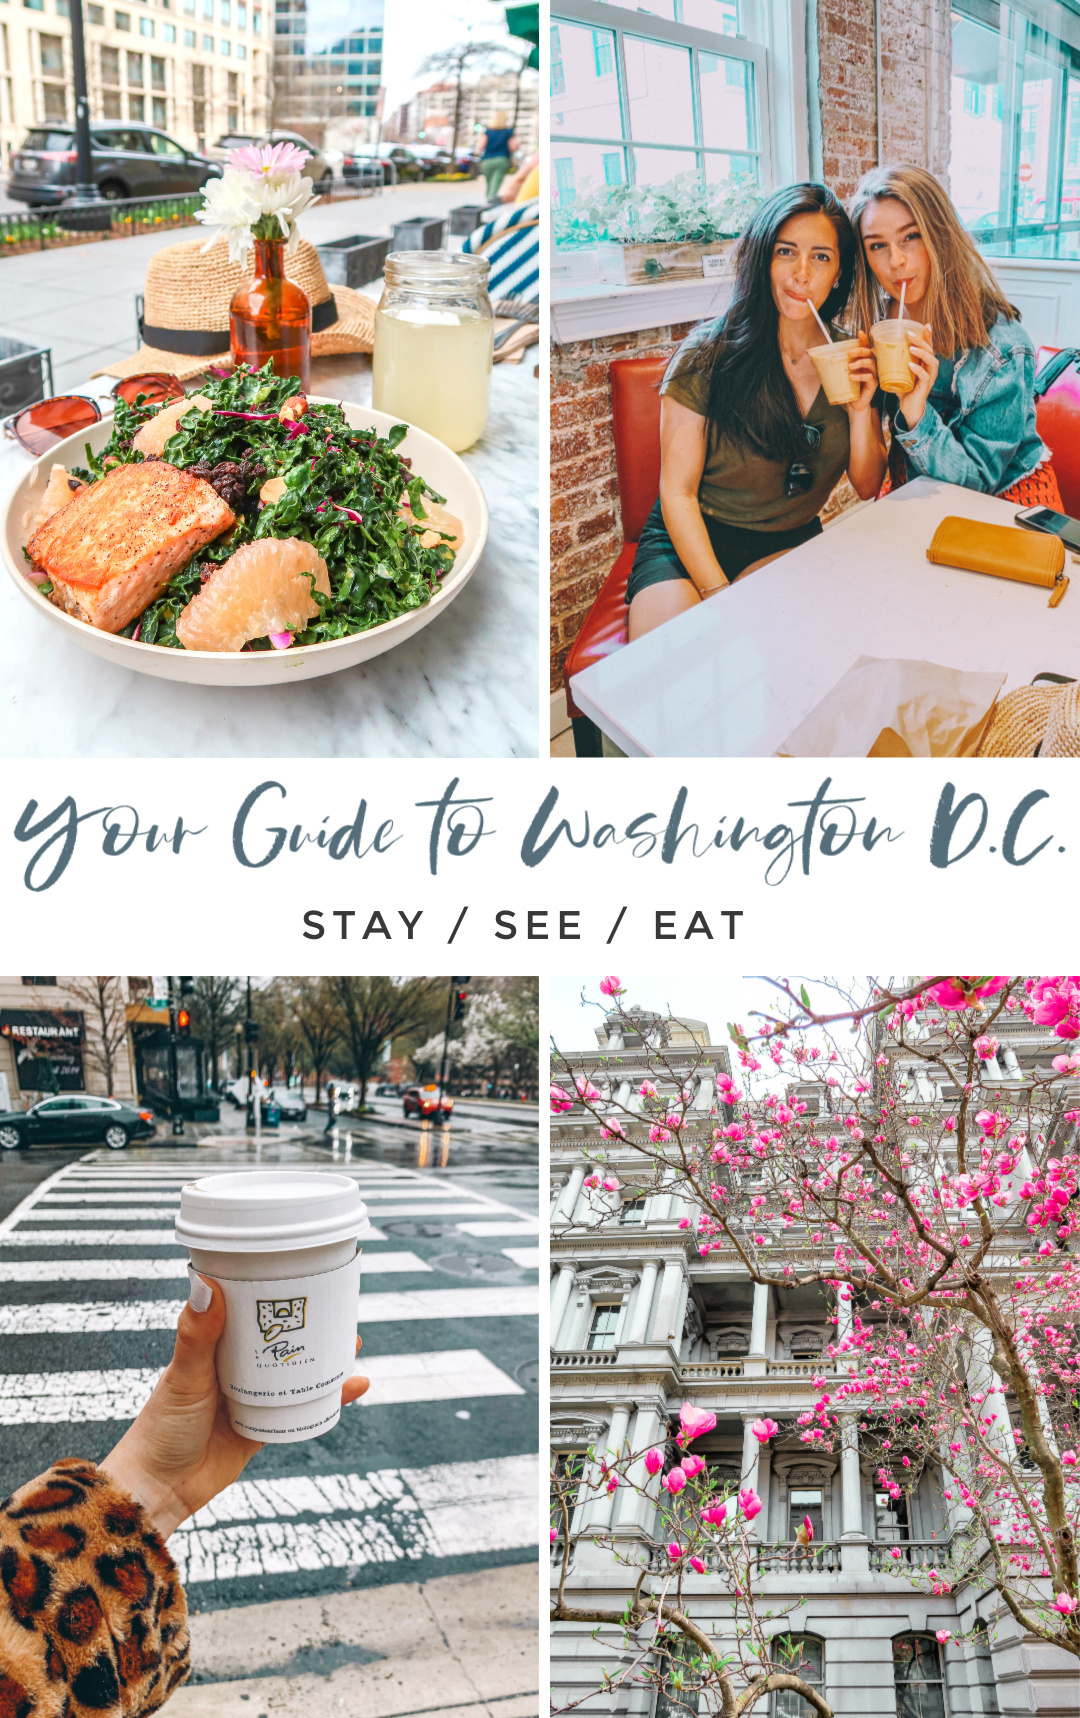 your guide to Washington DC, travel, cherry blossoms, where to eat, where to stay, metro, Georgetown, White House, food, healthy, Alexandria, getaway, fun, coffee